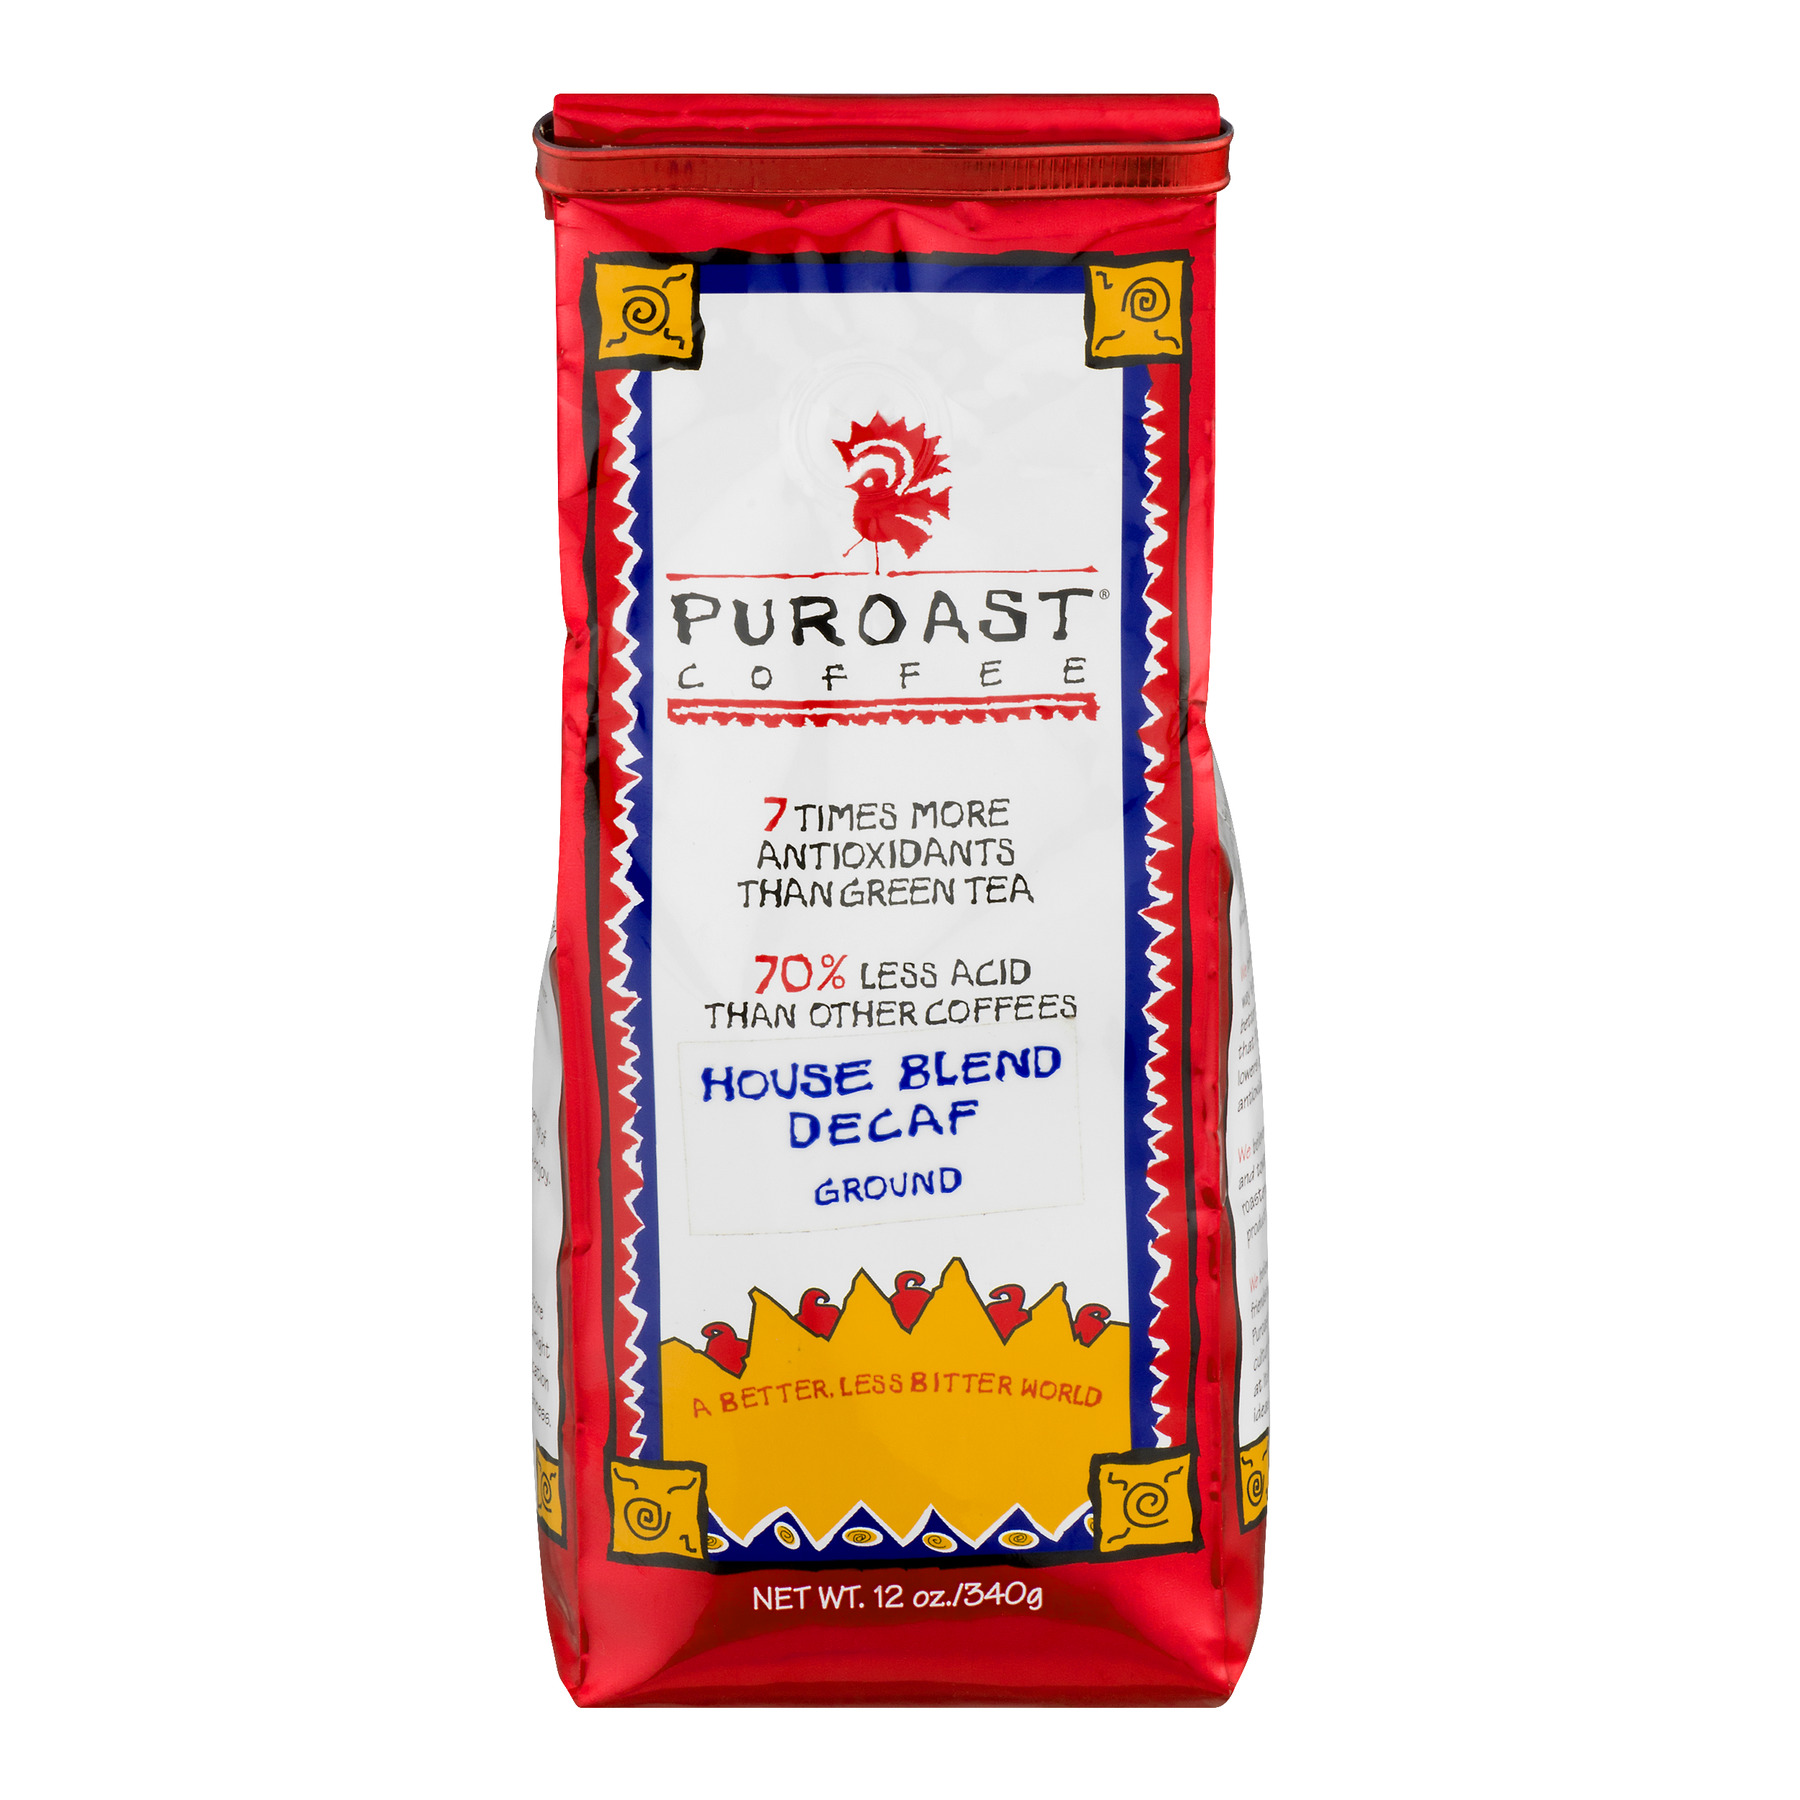 Puroast Coffee Ground House Blend Decaf, 12.0 OZ